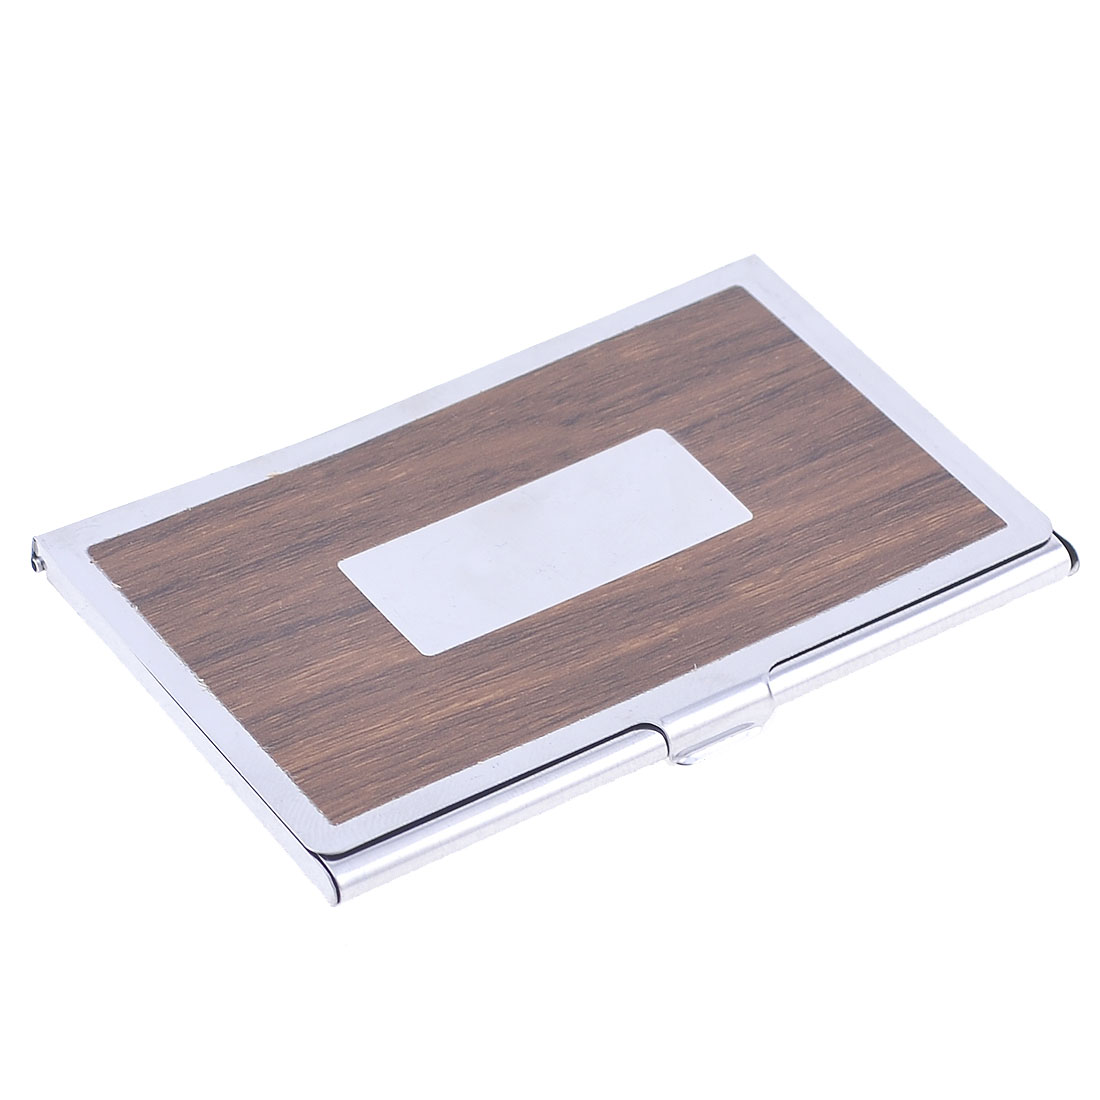 Polished Sliver Tone Brown Wood Grain Pattern Business Card Holder